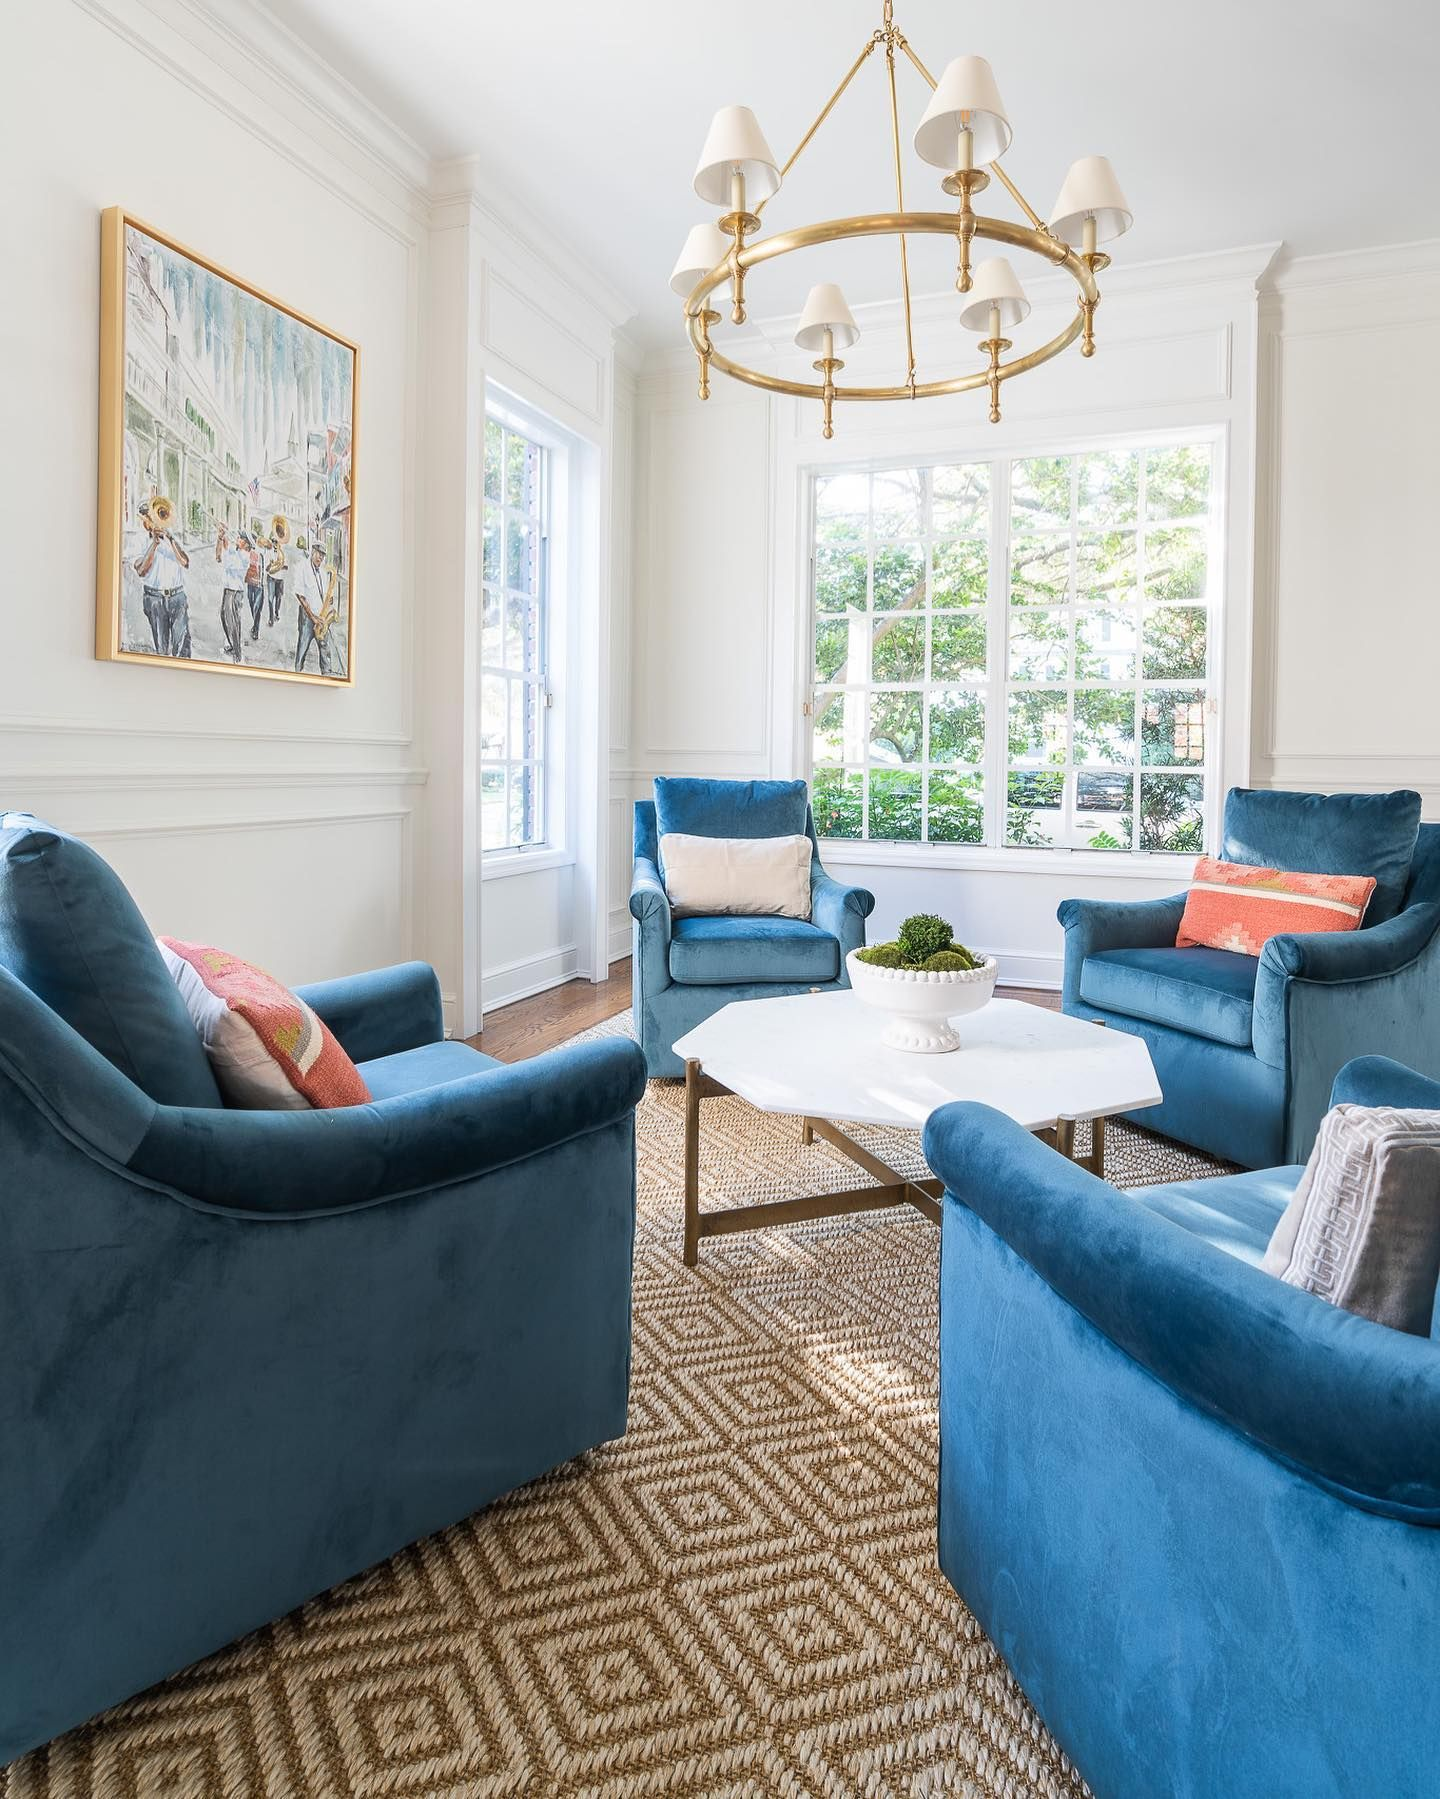 When a client gives me free reign, my true signature style comes through: an updated clean and classic design with a touch of color.  #hendricksoninteriors #interiordesign #tampainteriordesign #interiordecorator #tampainteriors #floridainteriors #beautifulspaces #homeinspiration #homegoals #homedecorating #interiorinspo #interiorlovers #myhousebeautiful #trasitionaldesign #designwithblue #tampalife #tampaliving #tampaprofessionals  #interiordesignideas #designwithblue #ballarddesigns #circalight